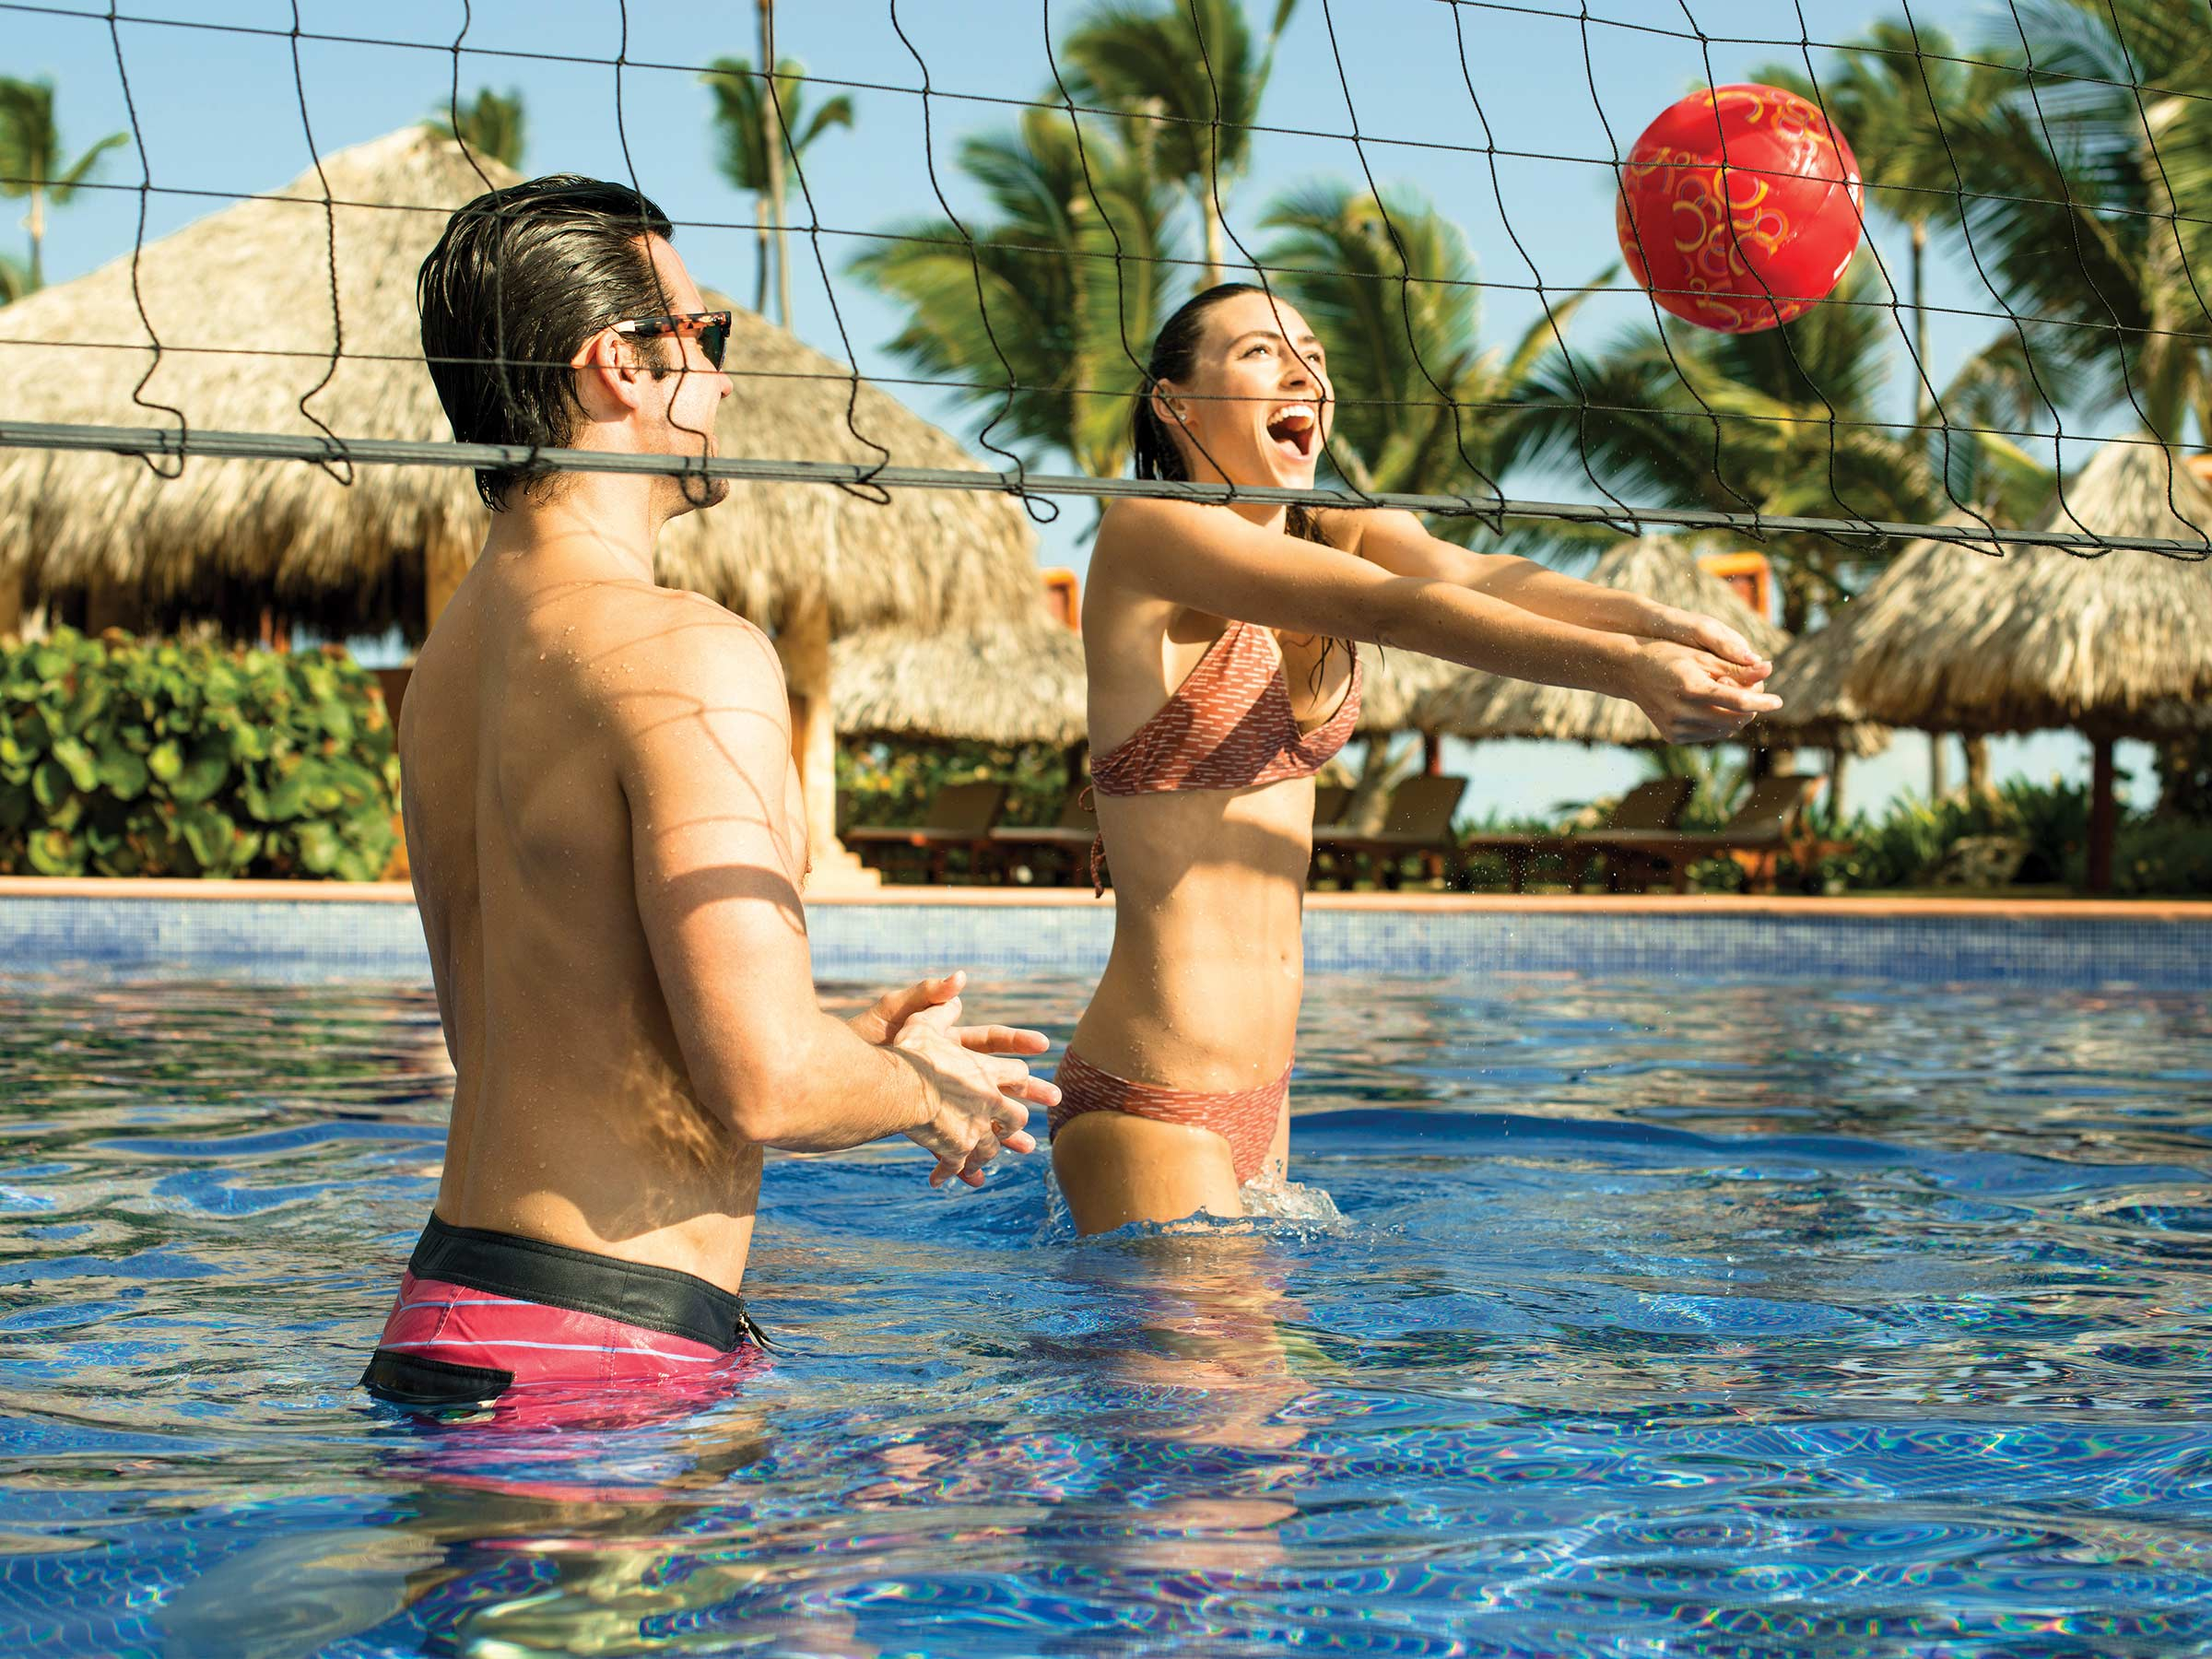 Pool Volleyball at a Punta Cana Resort